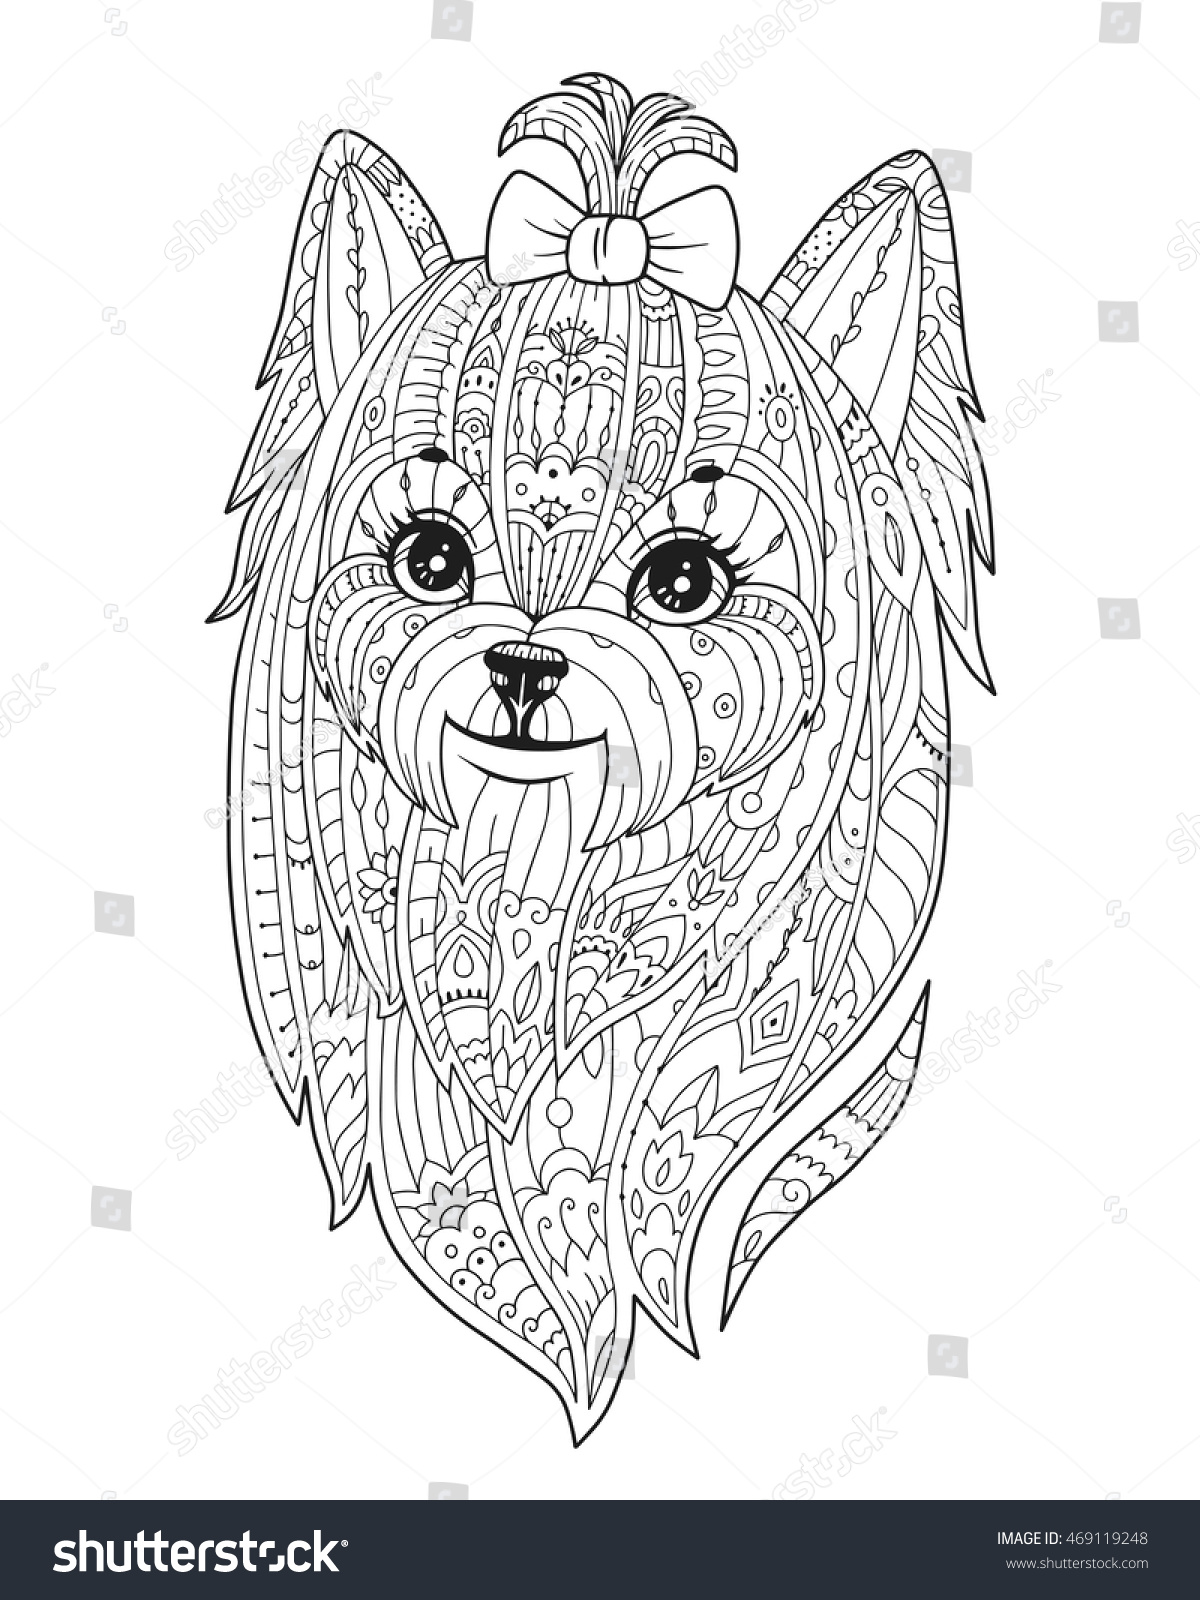 coloring page purebred dog zendala stock vector 469119248